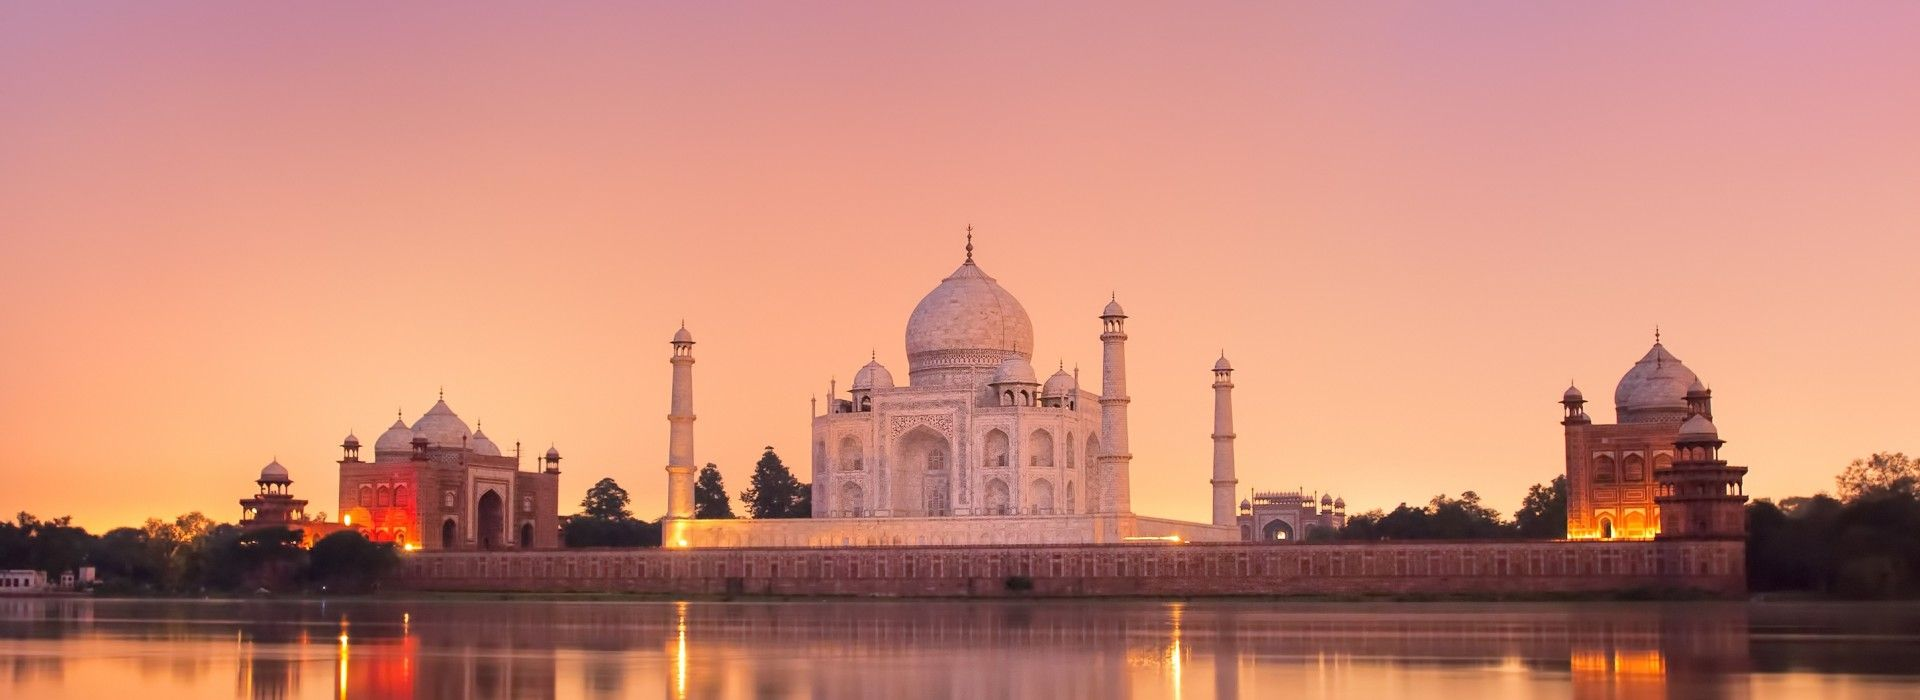 Sightseeing, attractions, culture and history Tours in India